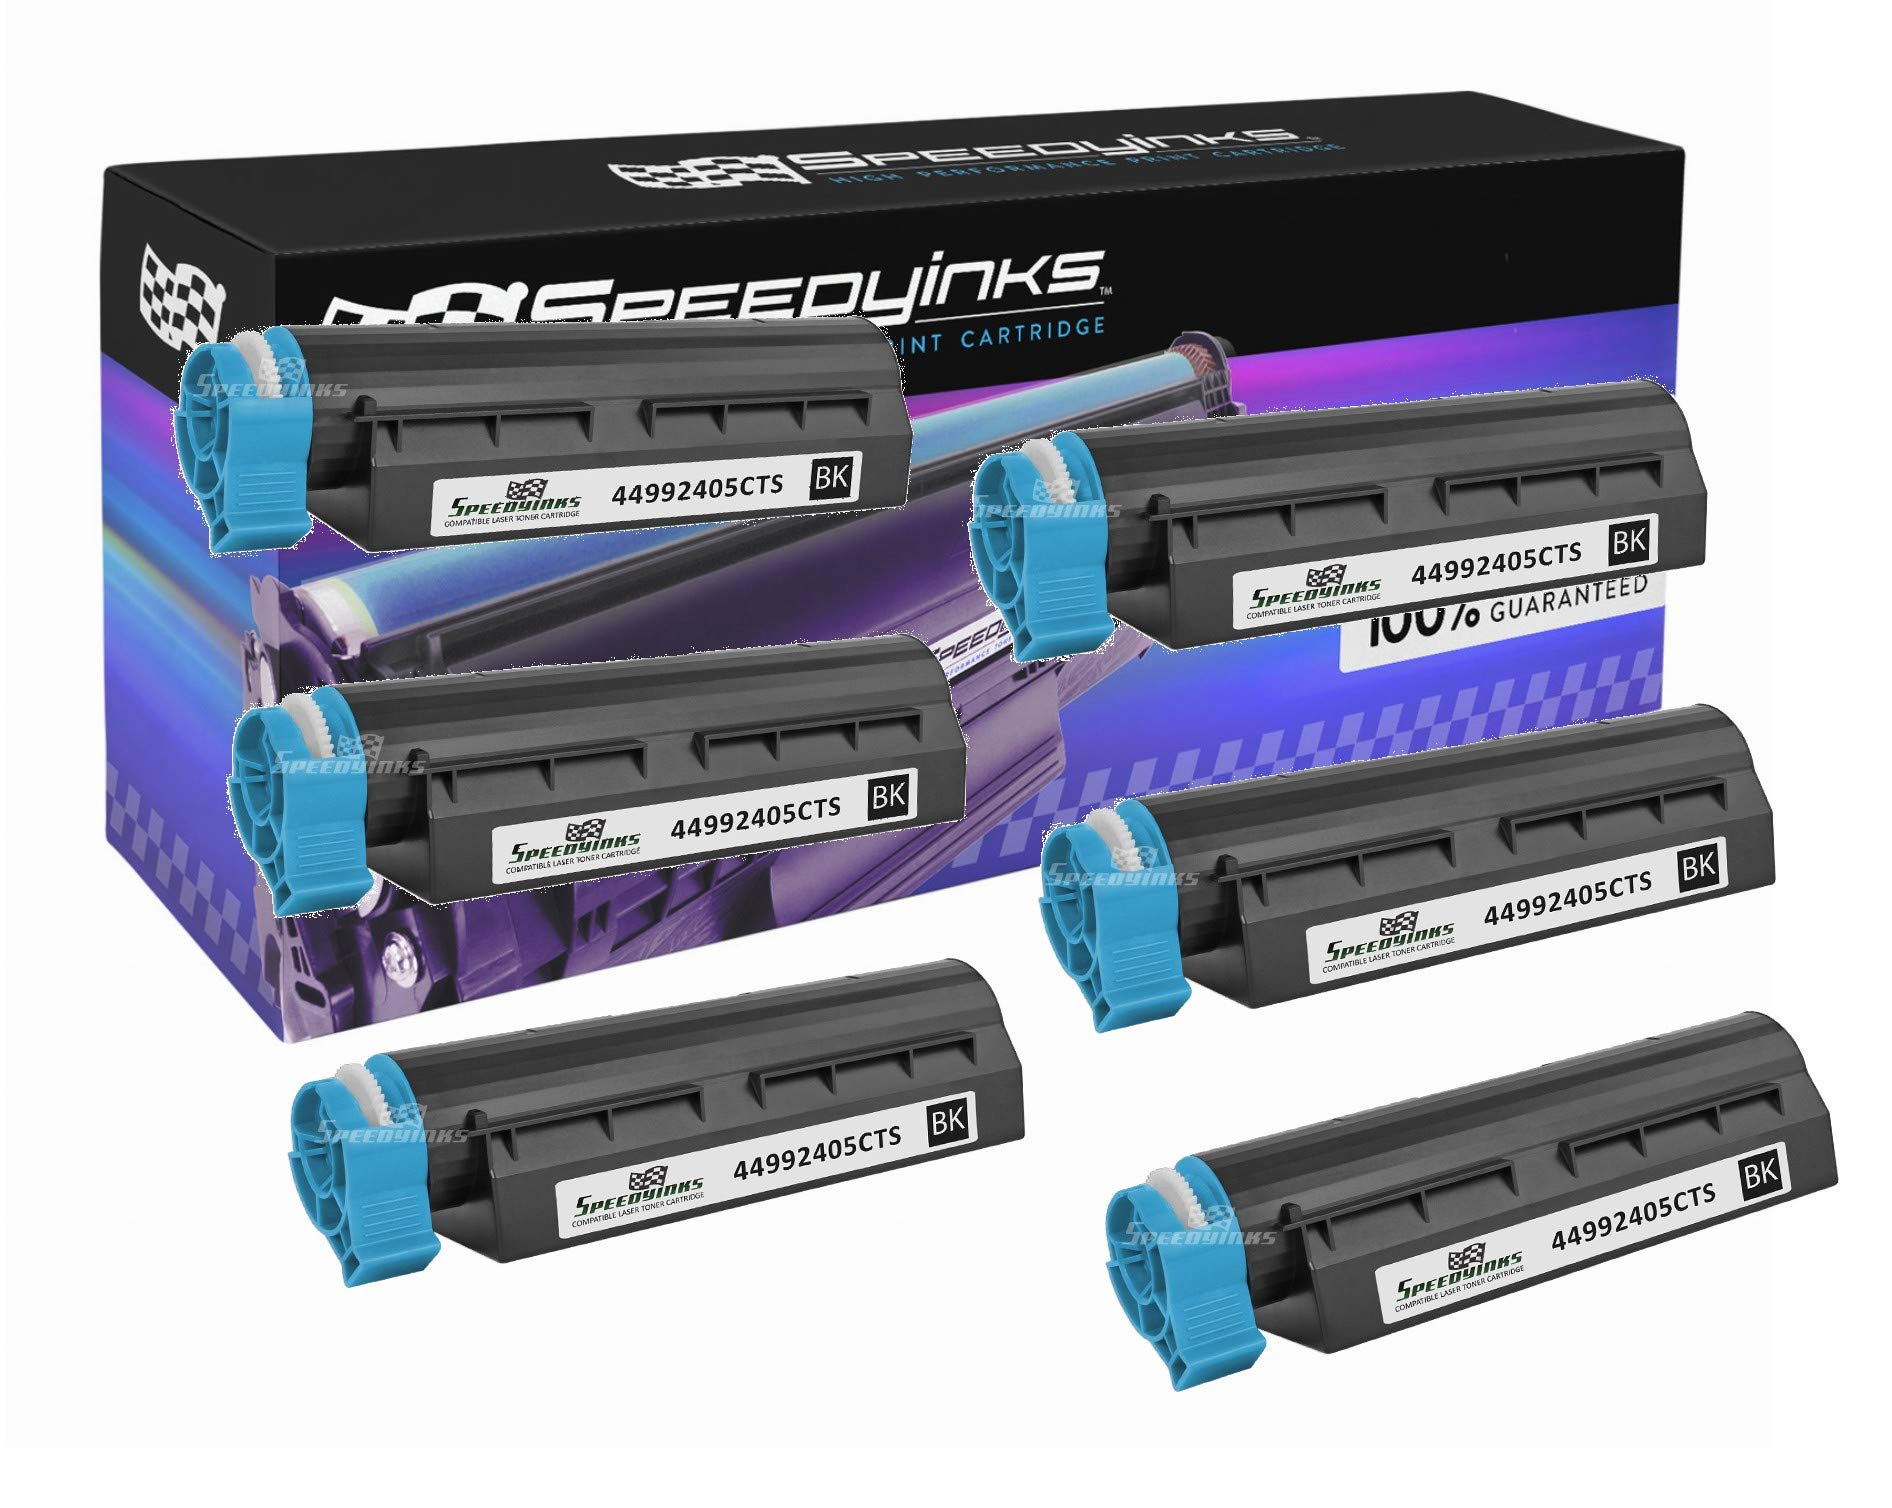 Speedy Inks Compatible Toner Cartridge Replacement for Okidata 44992405 (Black, 6-Pack)